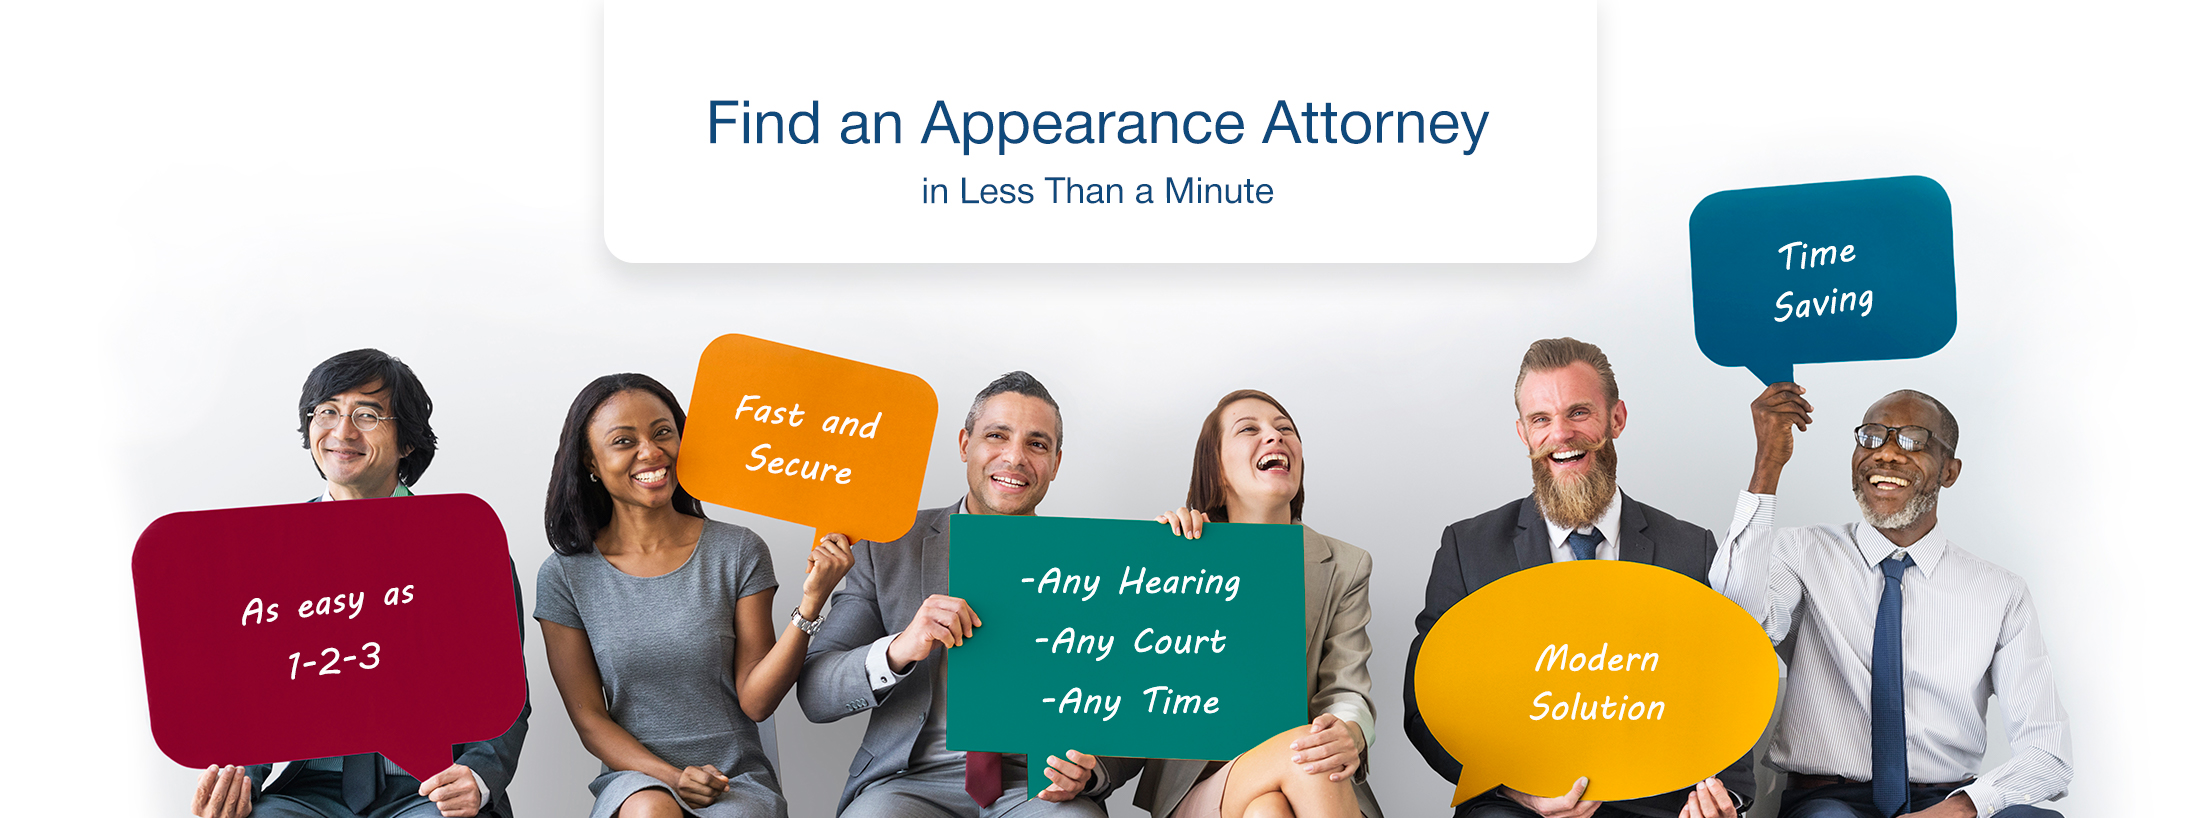 Find-an-Appearance attorney